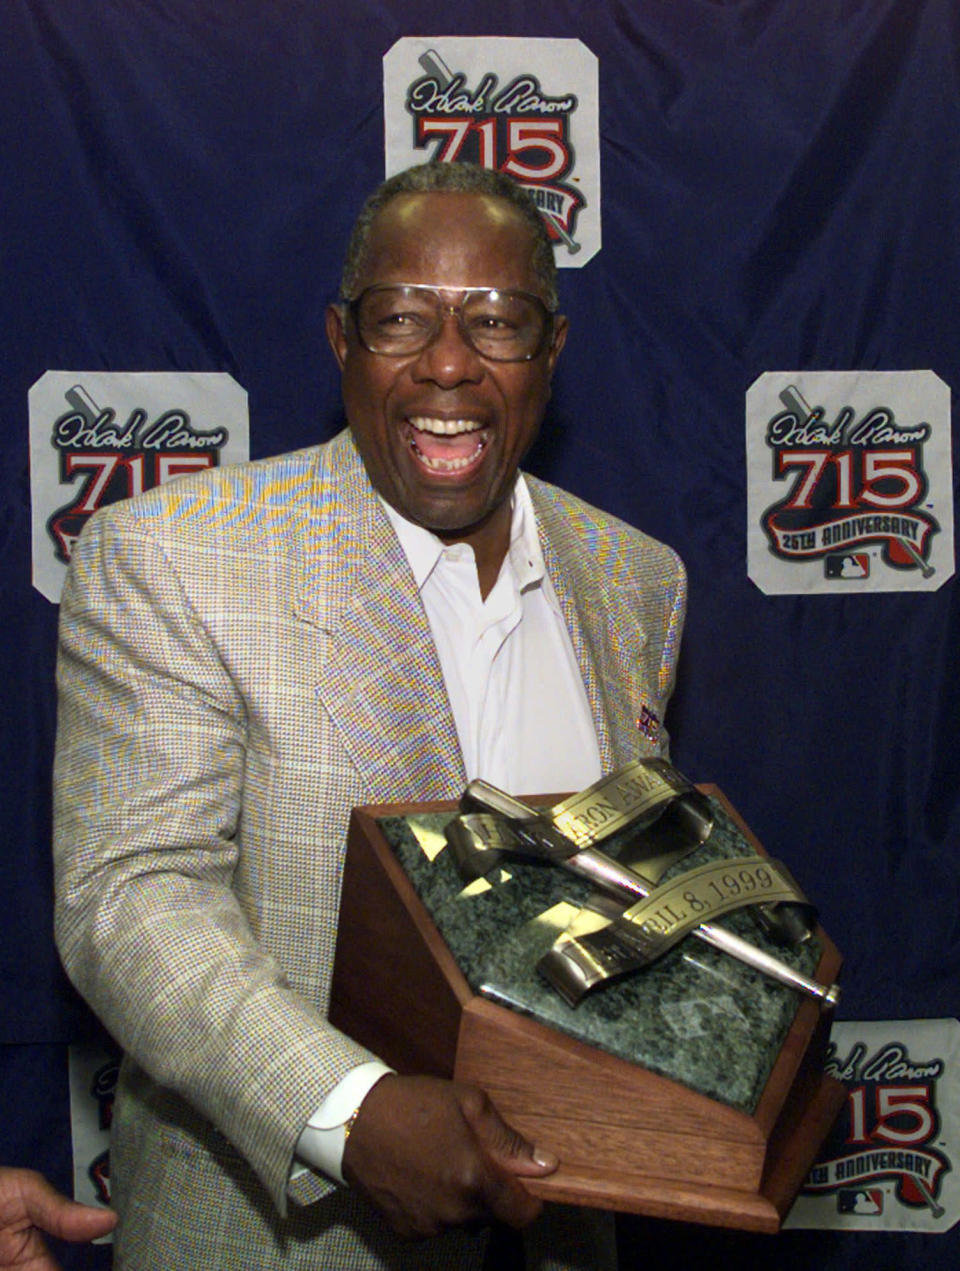 """FILE - In this April 8, 1999, file photo, Major League Baseball's all-time career home run record holder Hank Aaron laughs as he shows off the newly unveiled """"Hank Aaron Award"""" during a news conference in Atlanta. Hank Aaron, who endured racist threats with stoic dignity during his pursuit of Babe Ruth's home run record and gracefully left his mark as one of baseball's greatest all-around players, died Friday. He was 86. The Atlanta Braves, Aaron's longtime team, said he died peacefully in his sleep. No cause was given. (AP Photo/John Bazemore, File)"""